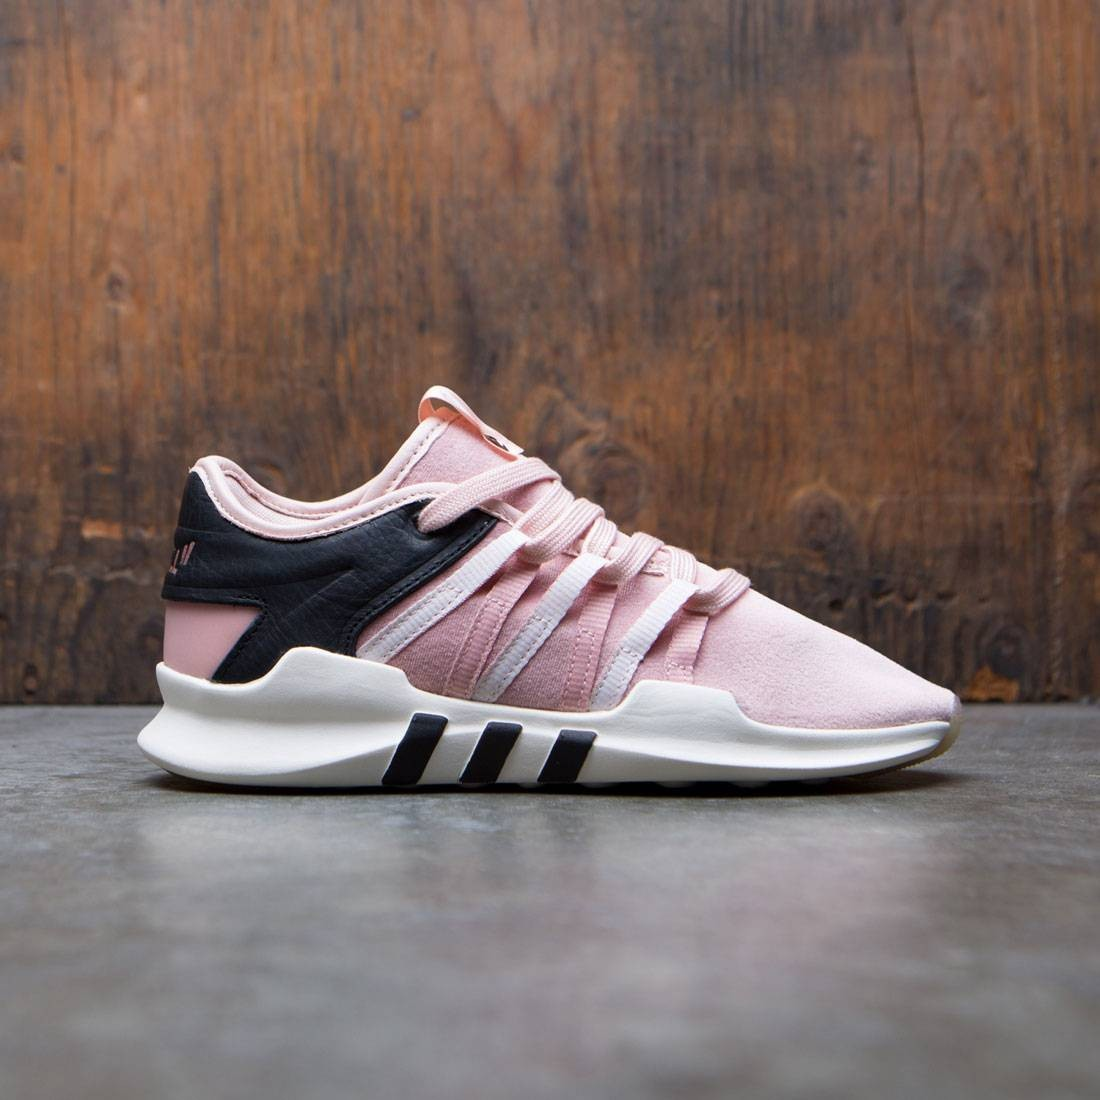 buy popular 09284 9d862 Adidas Consortium x Overkill x Fruition Women EQT Lacing ADV Sneaker  Exchange (pink / vapour pink / ice pink / chalk white)